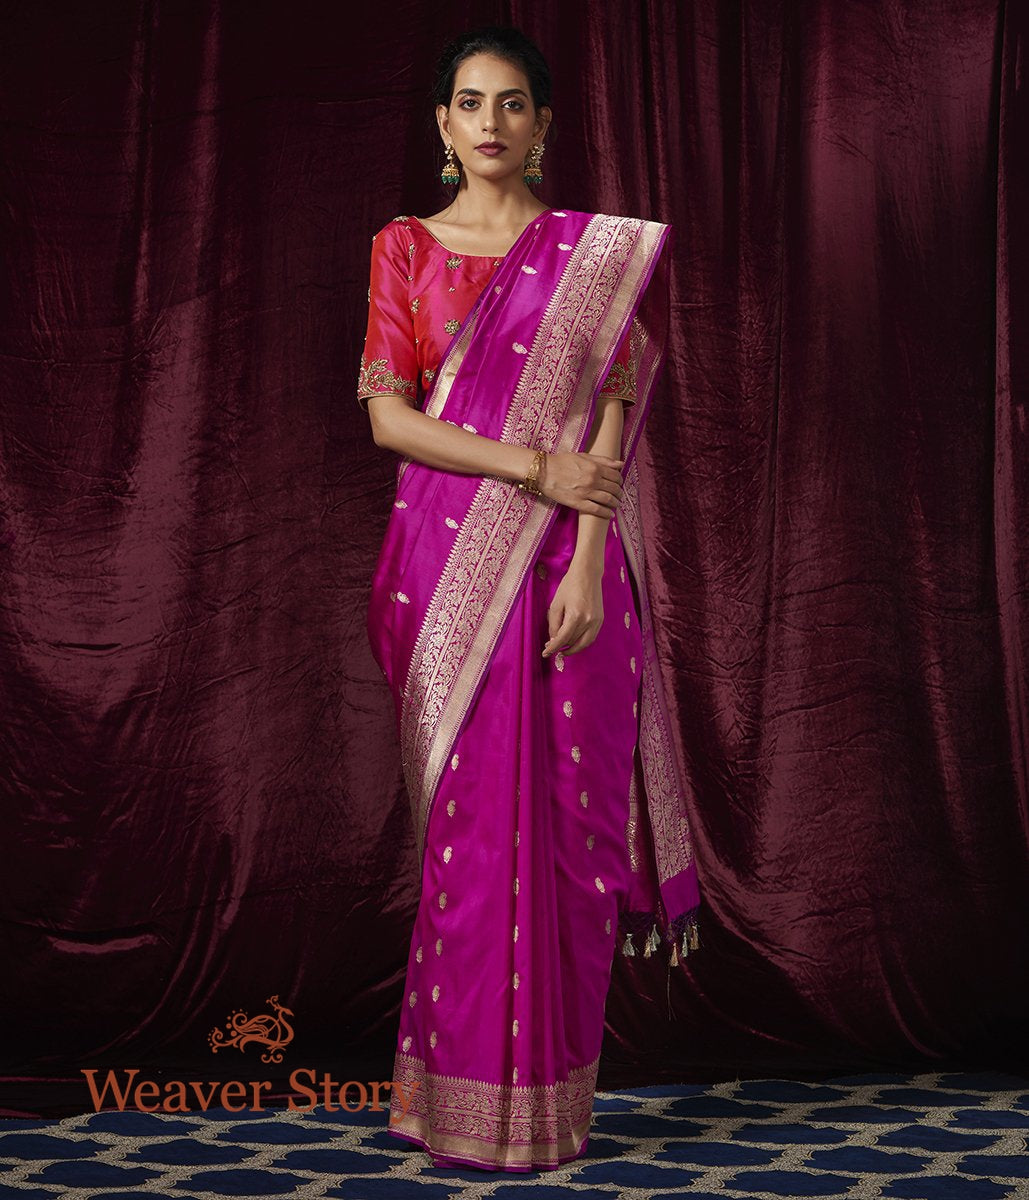 Handwoven Purple Katan Silk Saree with Paisleys woven in Gold and Silver Zari